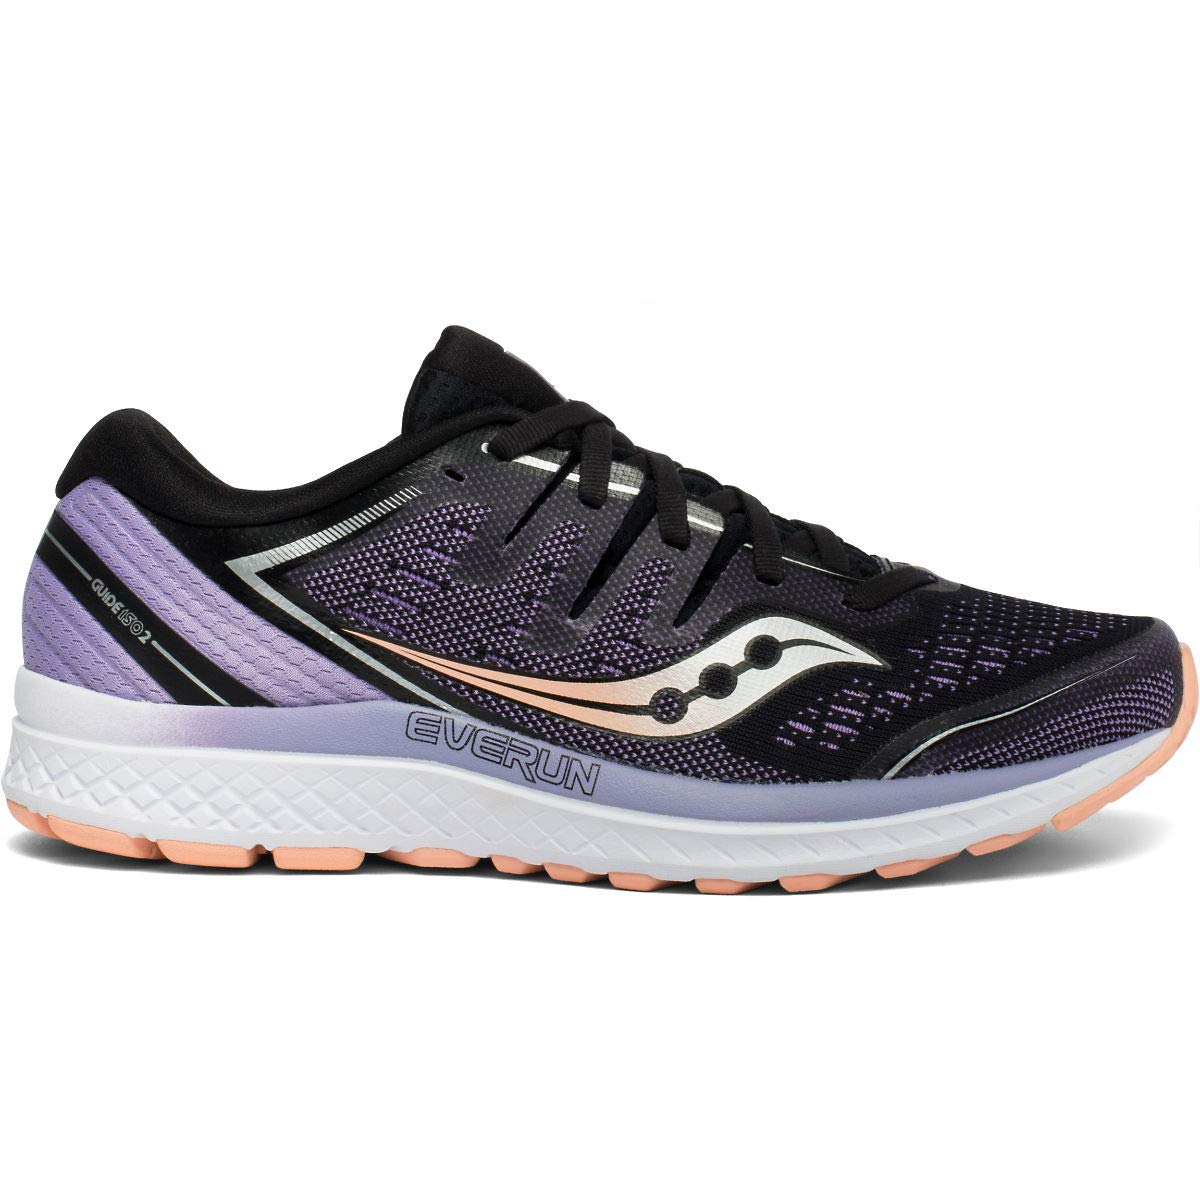 Saucony Women's Guide ISO 2 Running Shoe, Black/Purple, 8.5 M US by Saucony